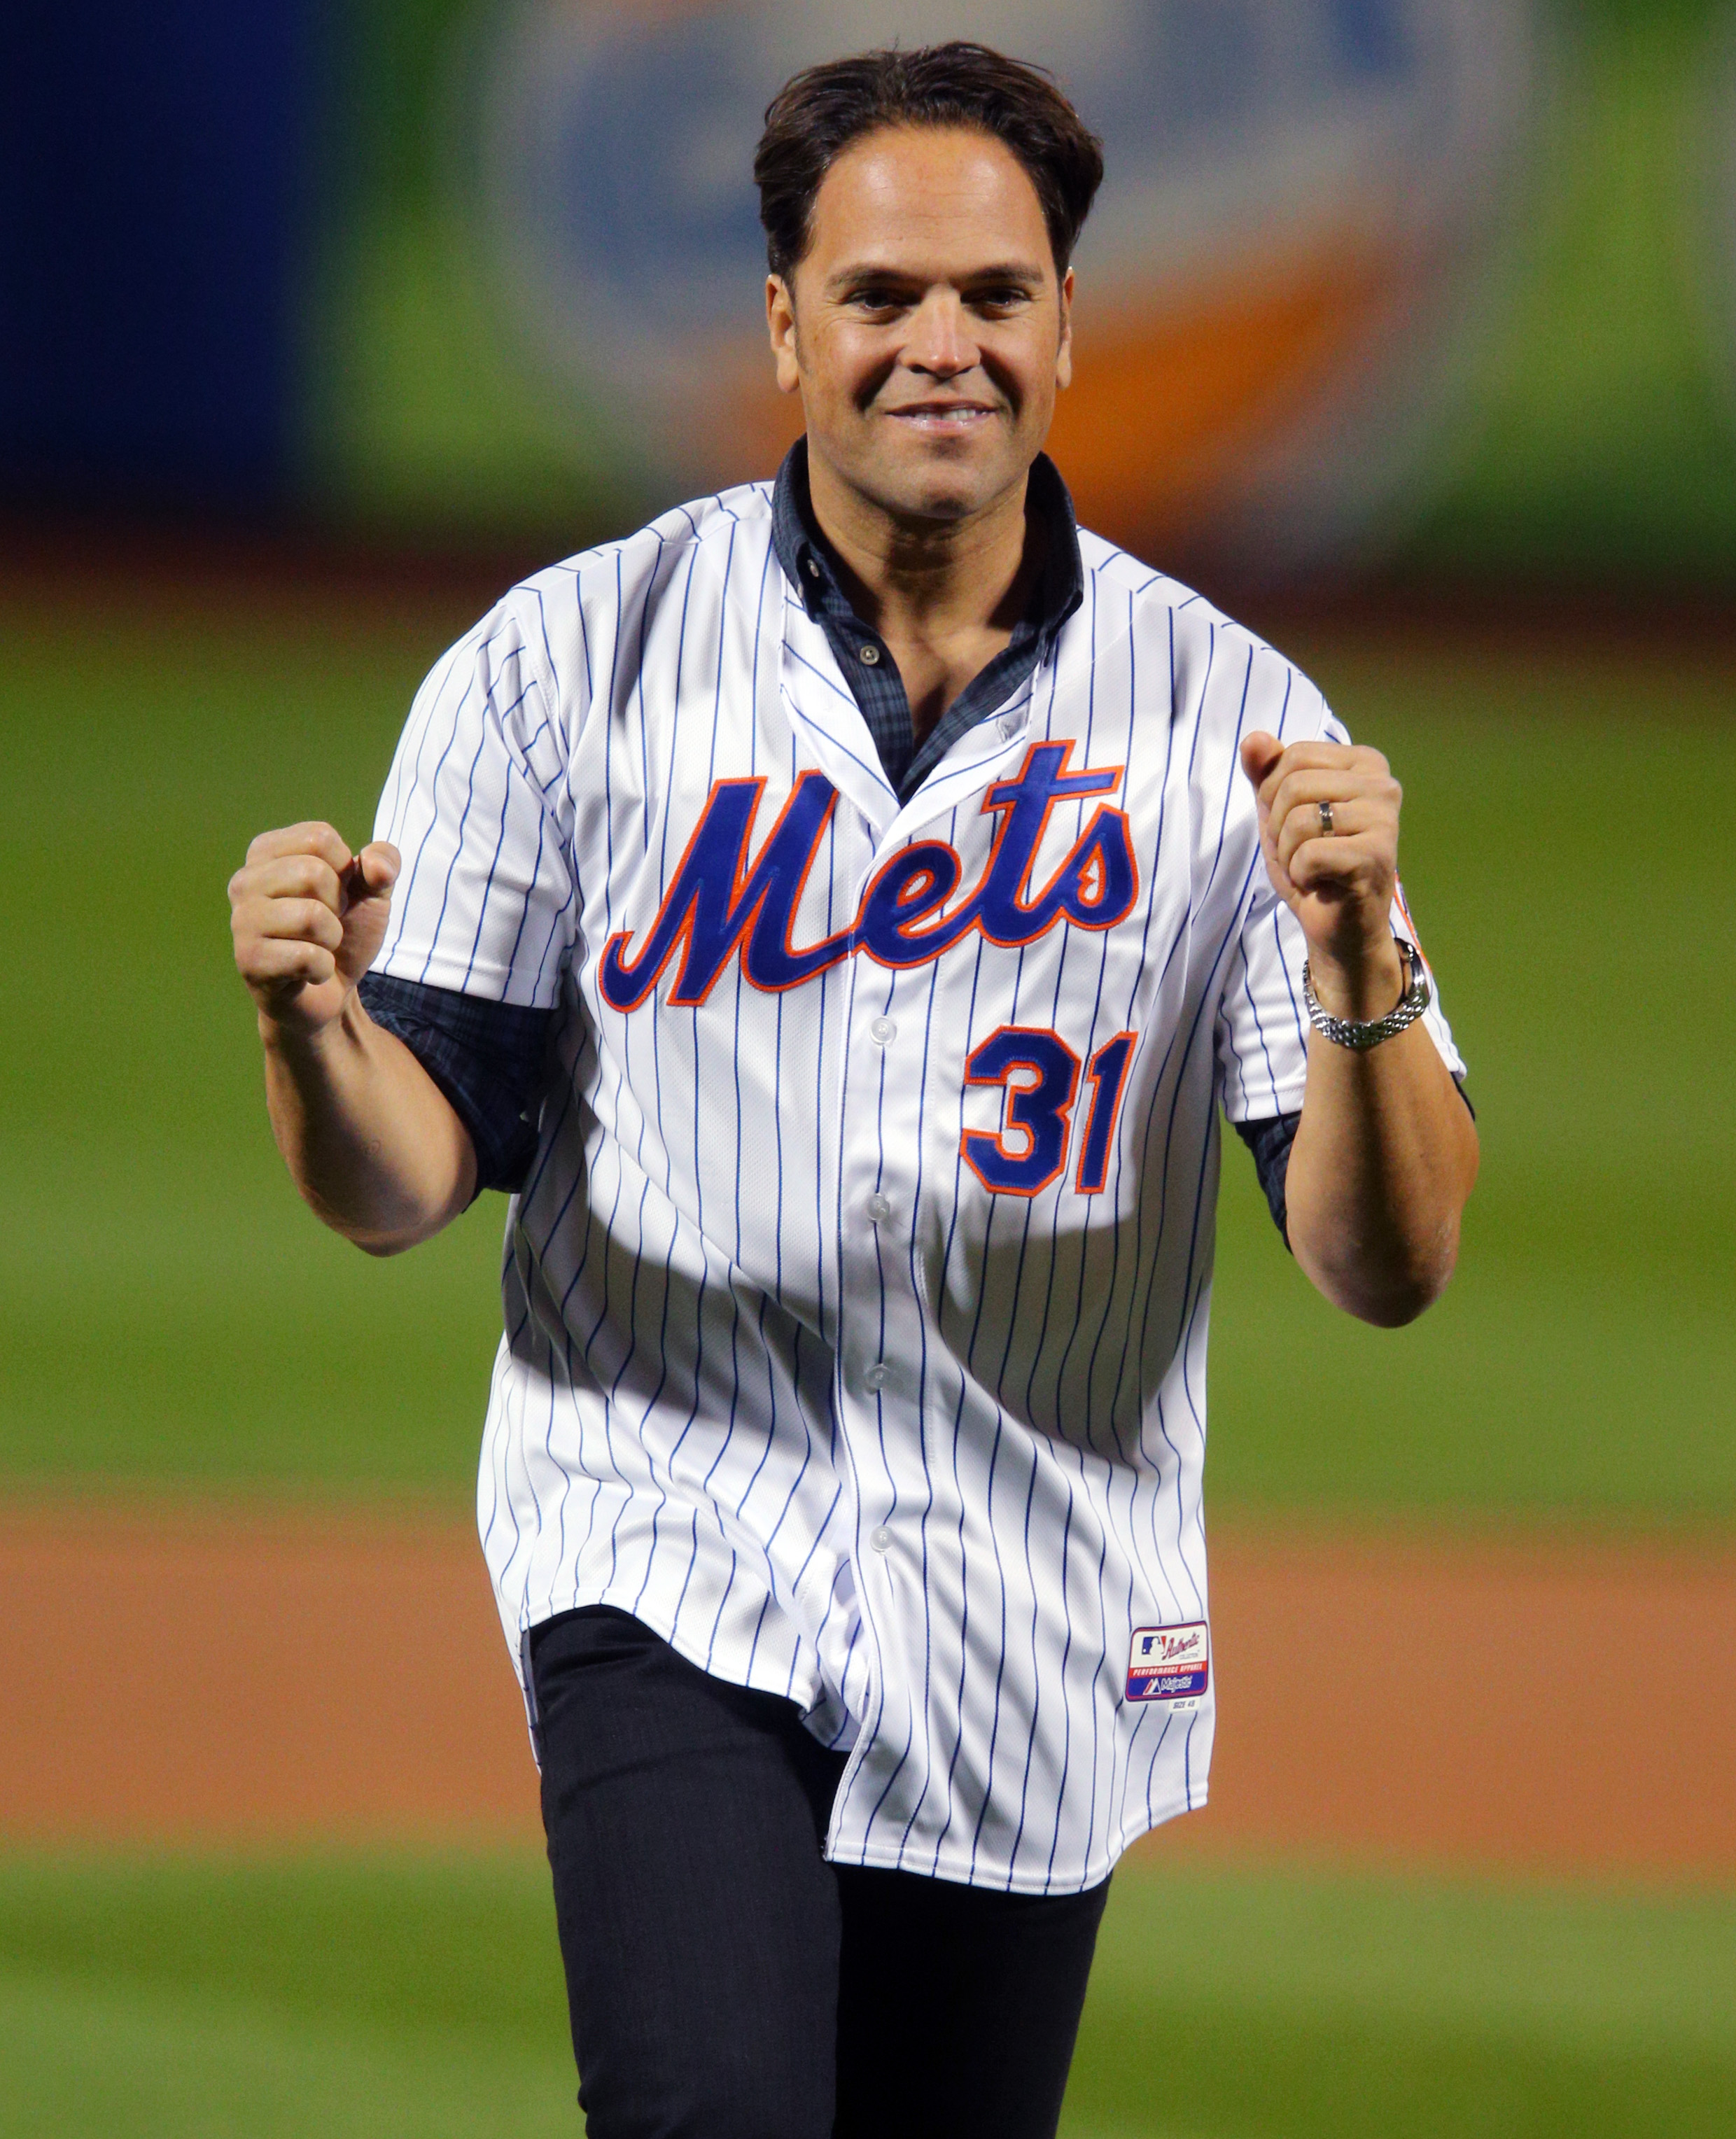 FILE - In this Oct. 30, 2015, file photo, former New York Mets' Mike Piazza throws out the first pitch before Game 3 of the Major League Baseball World Series against the Kansas City Royals, in New York. Ken Griffey Jr. seems assured of election to the Ba